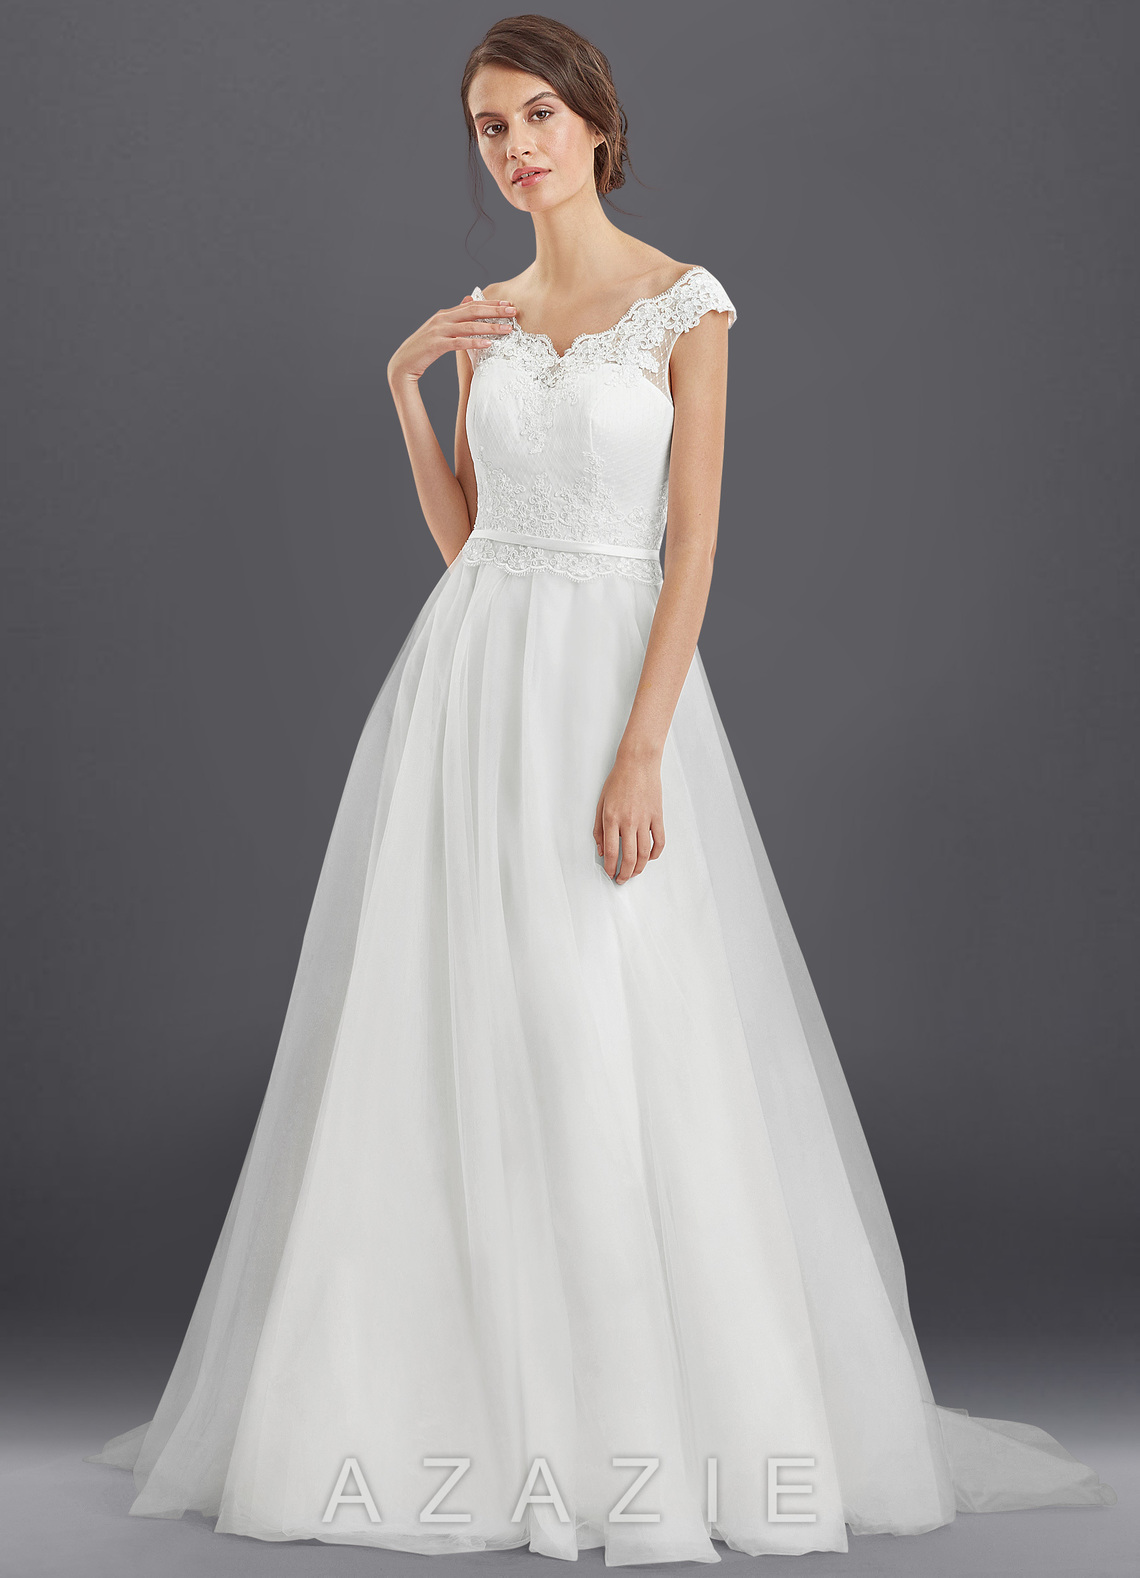 Azazie Cindy BG Wedding Dress